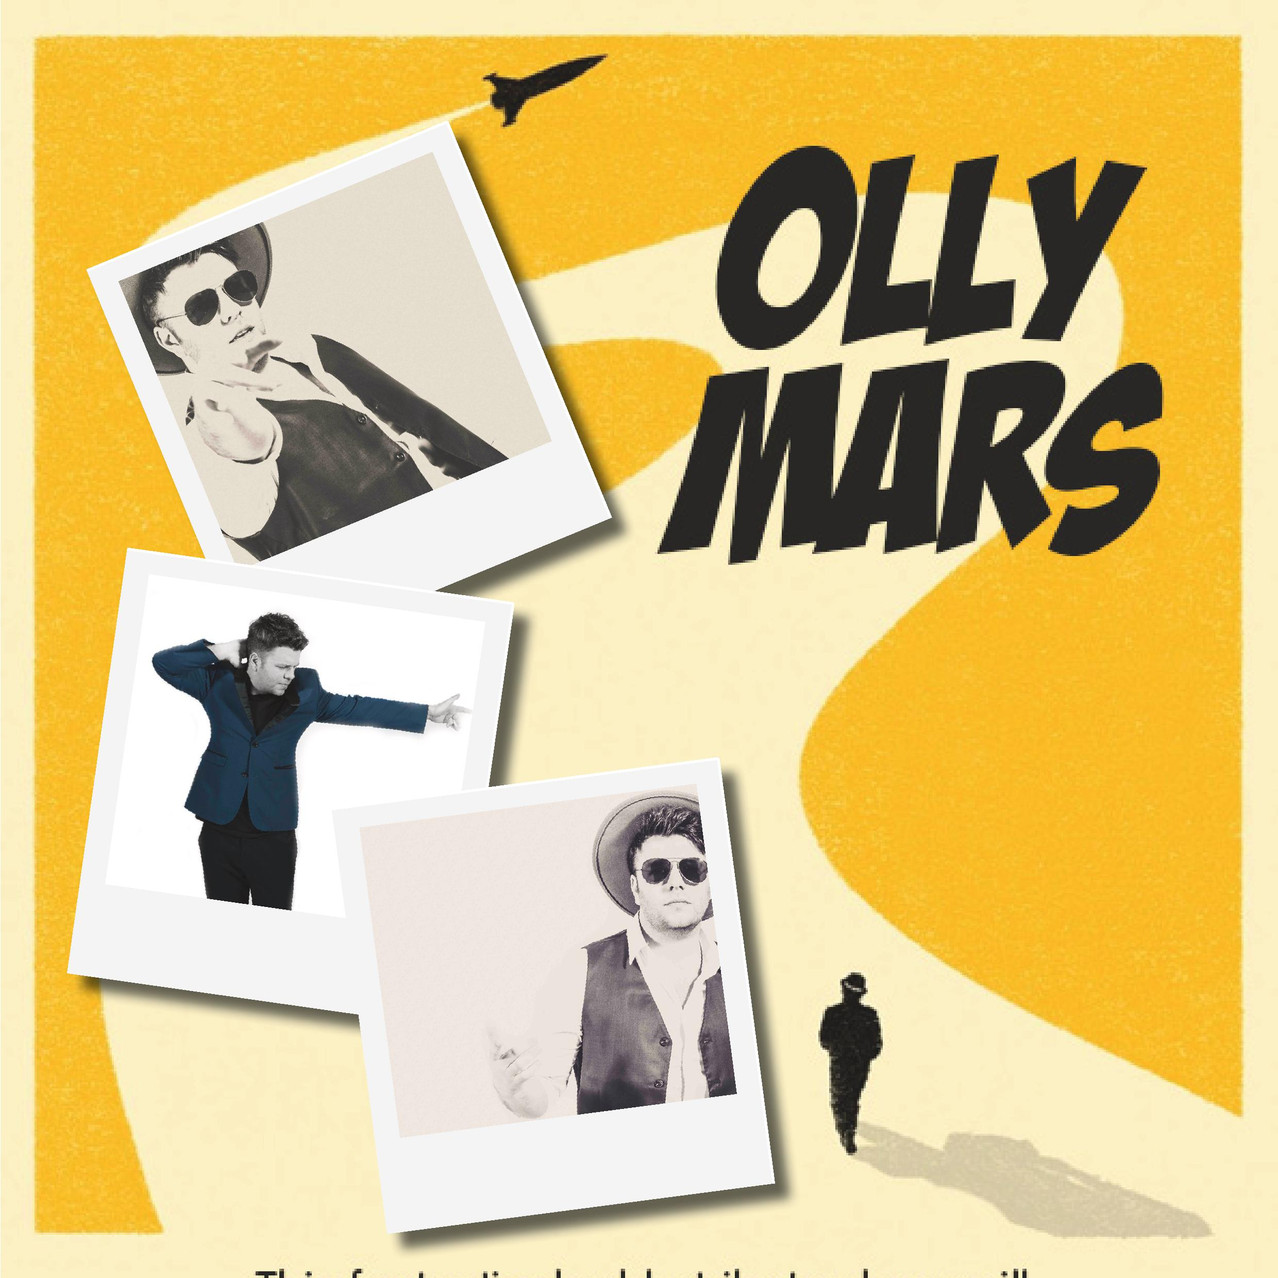 Olly Mars Double Tribute